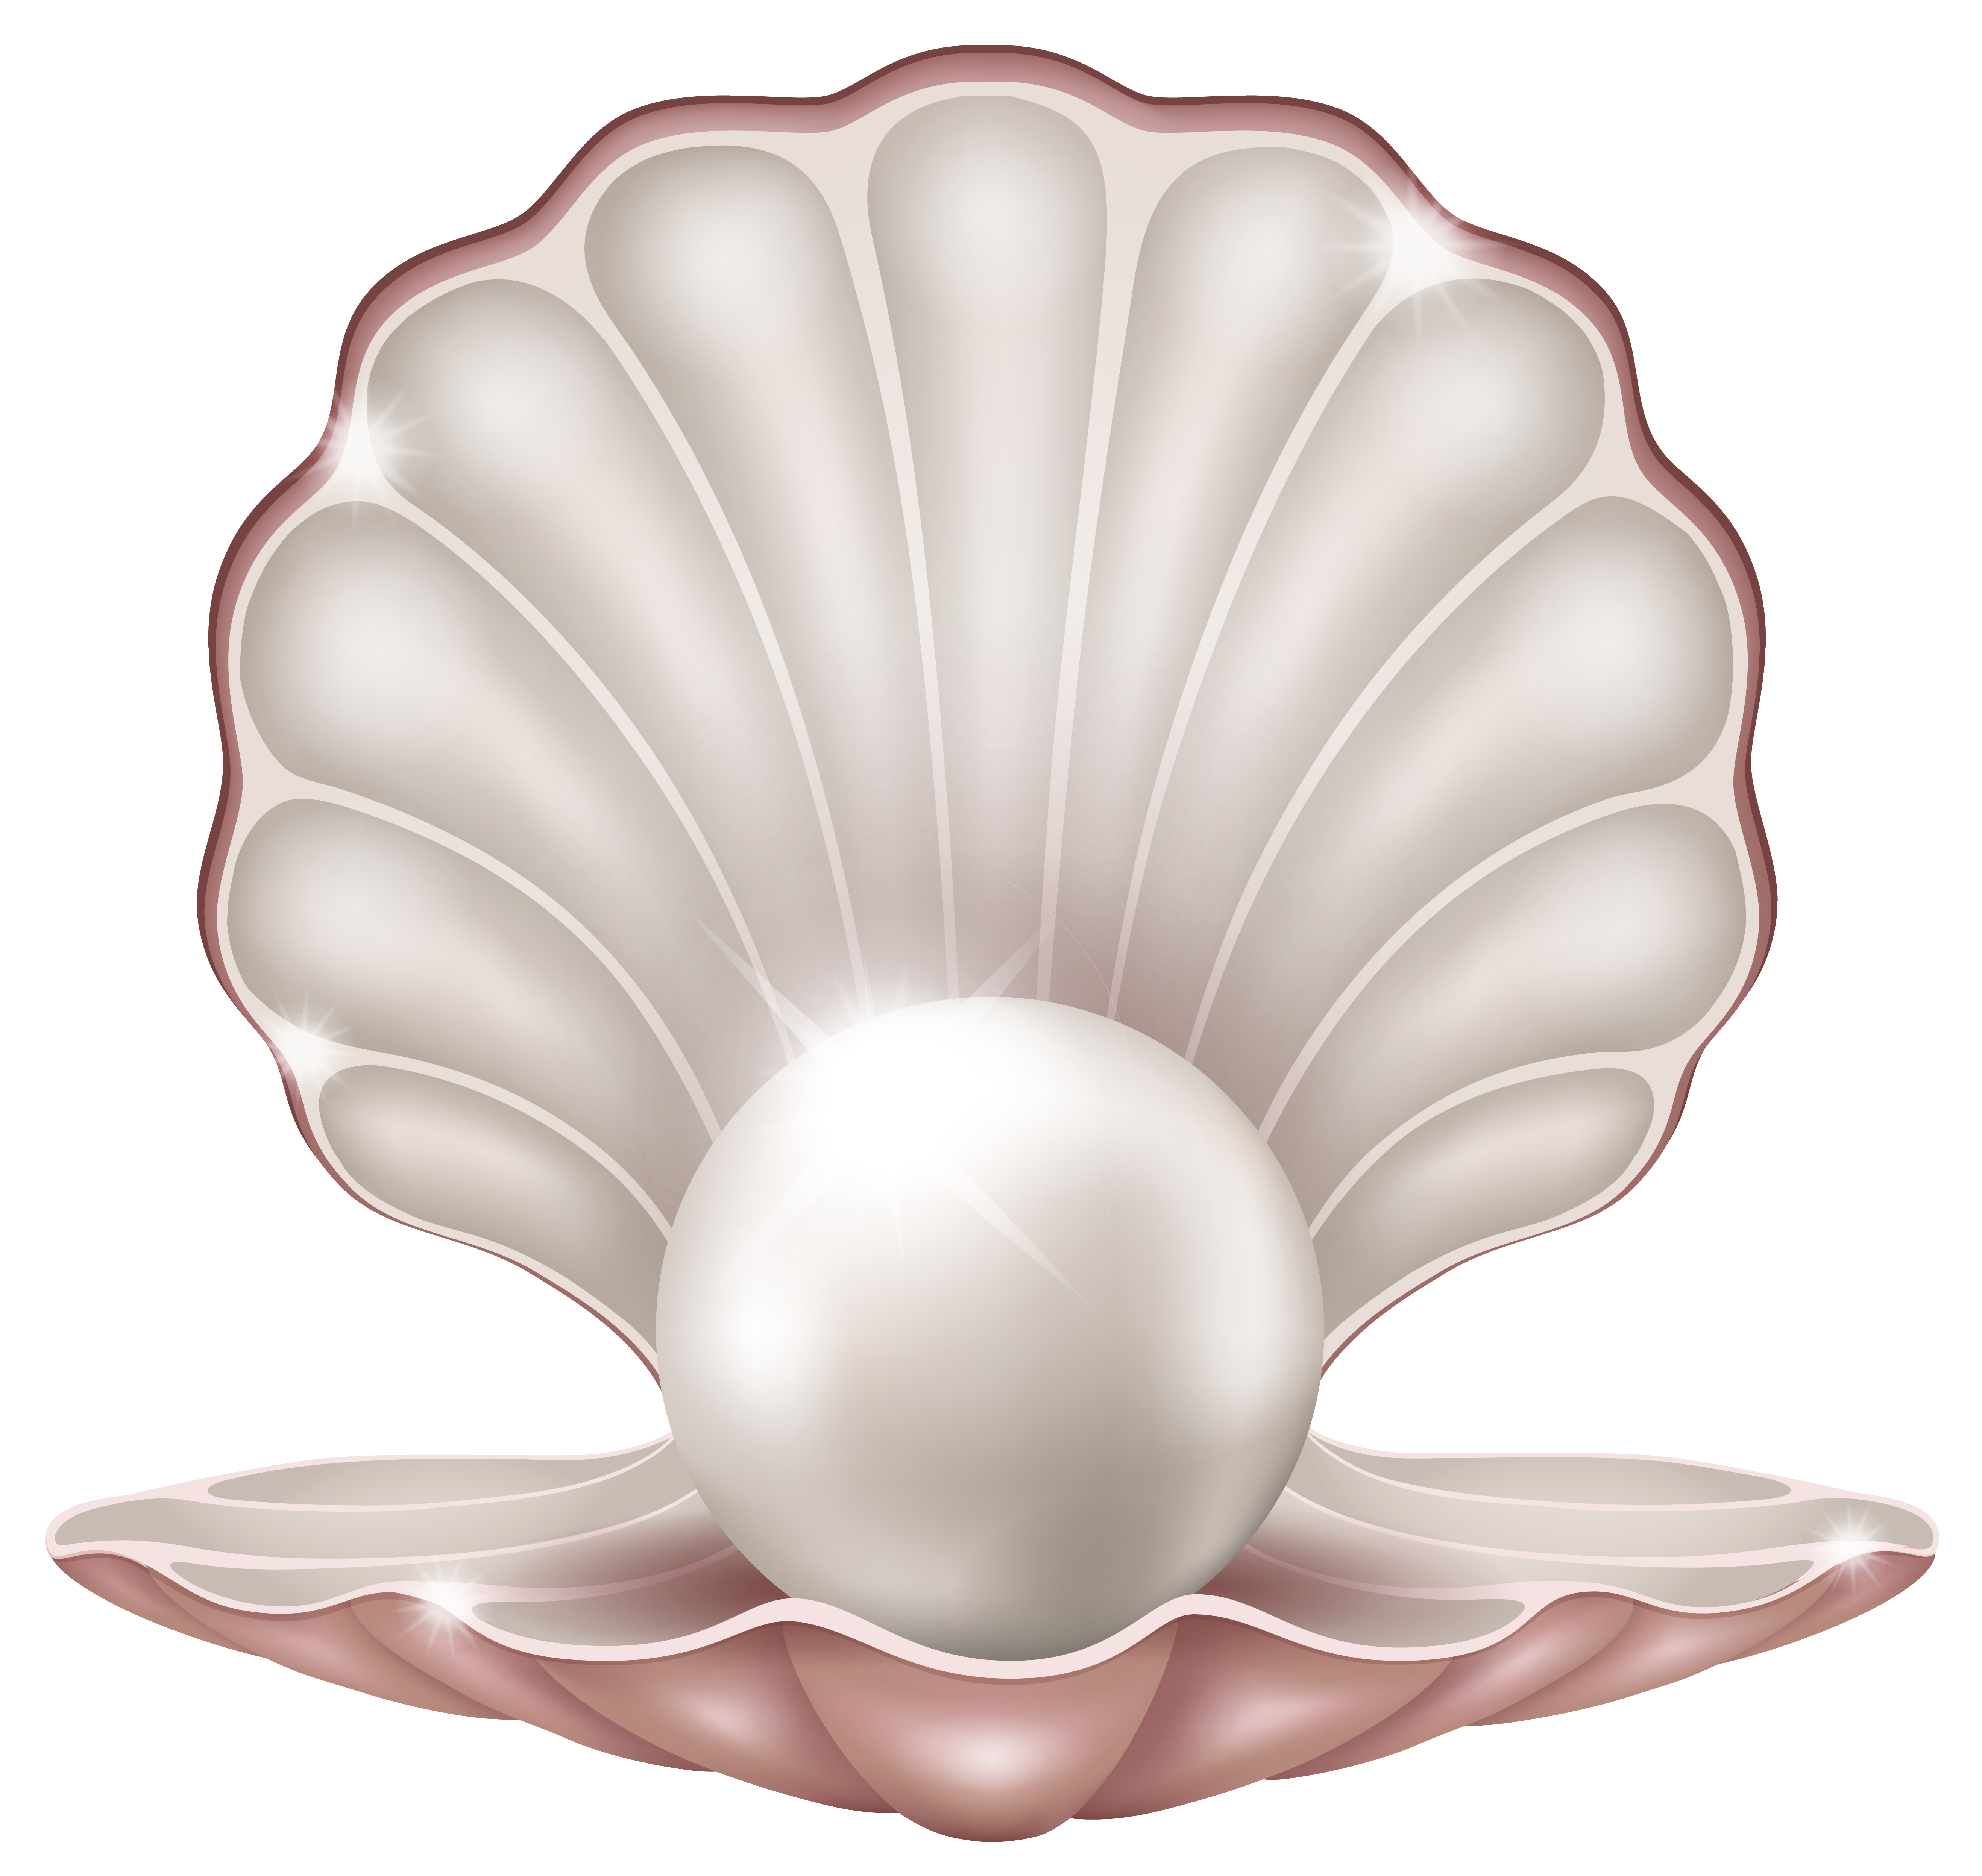 Pearl clipart Pearl clipart #3 clipart Download